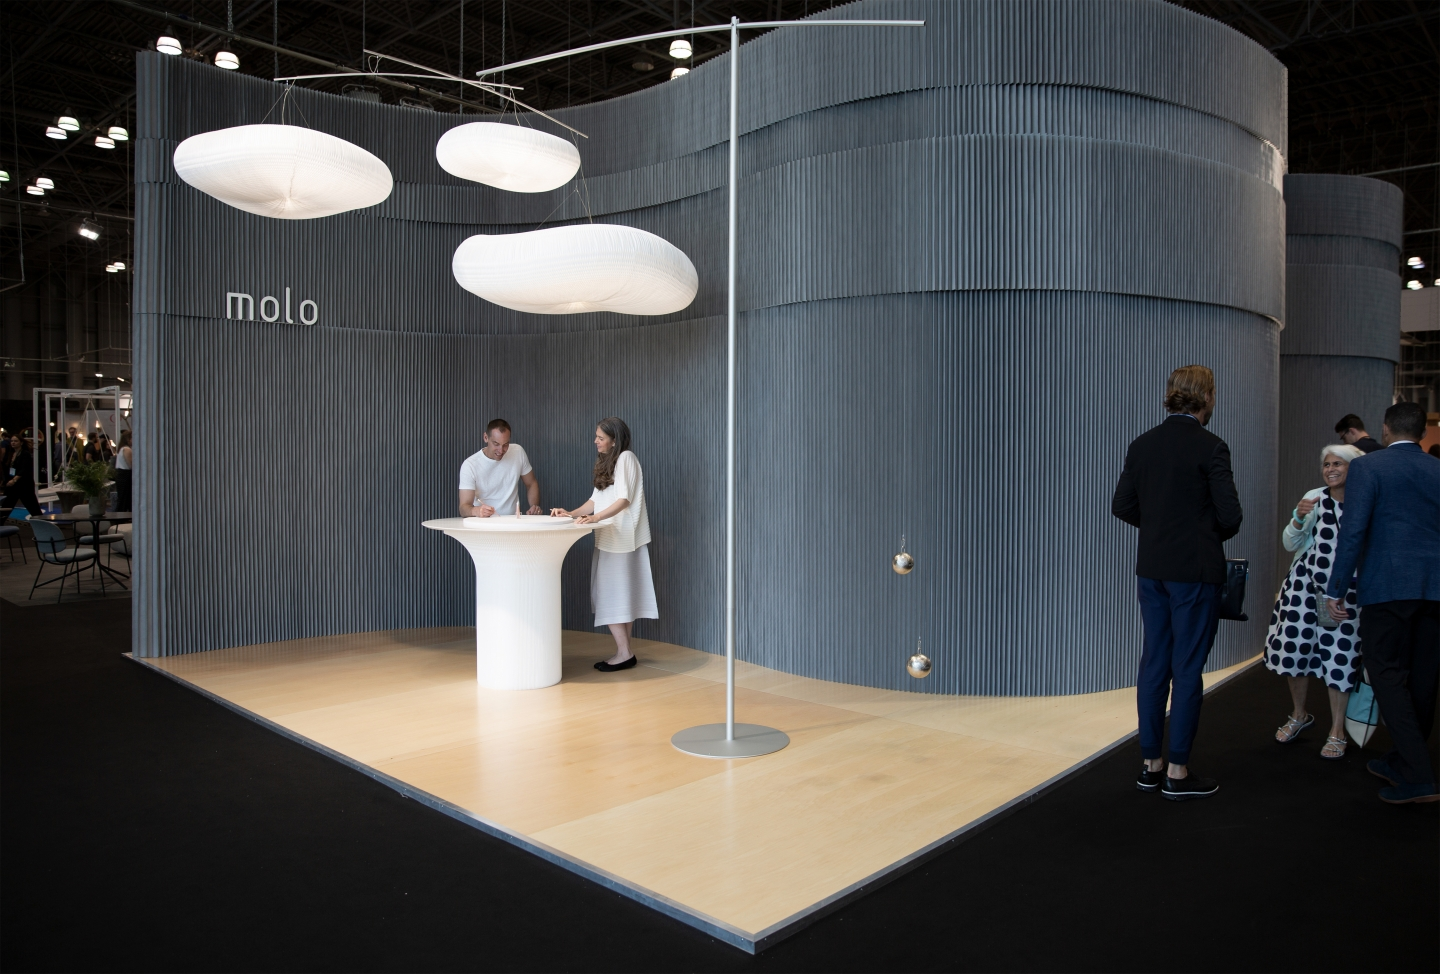 A white standing height table, made by molo, at ICFF 2018.